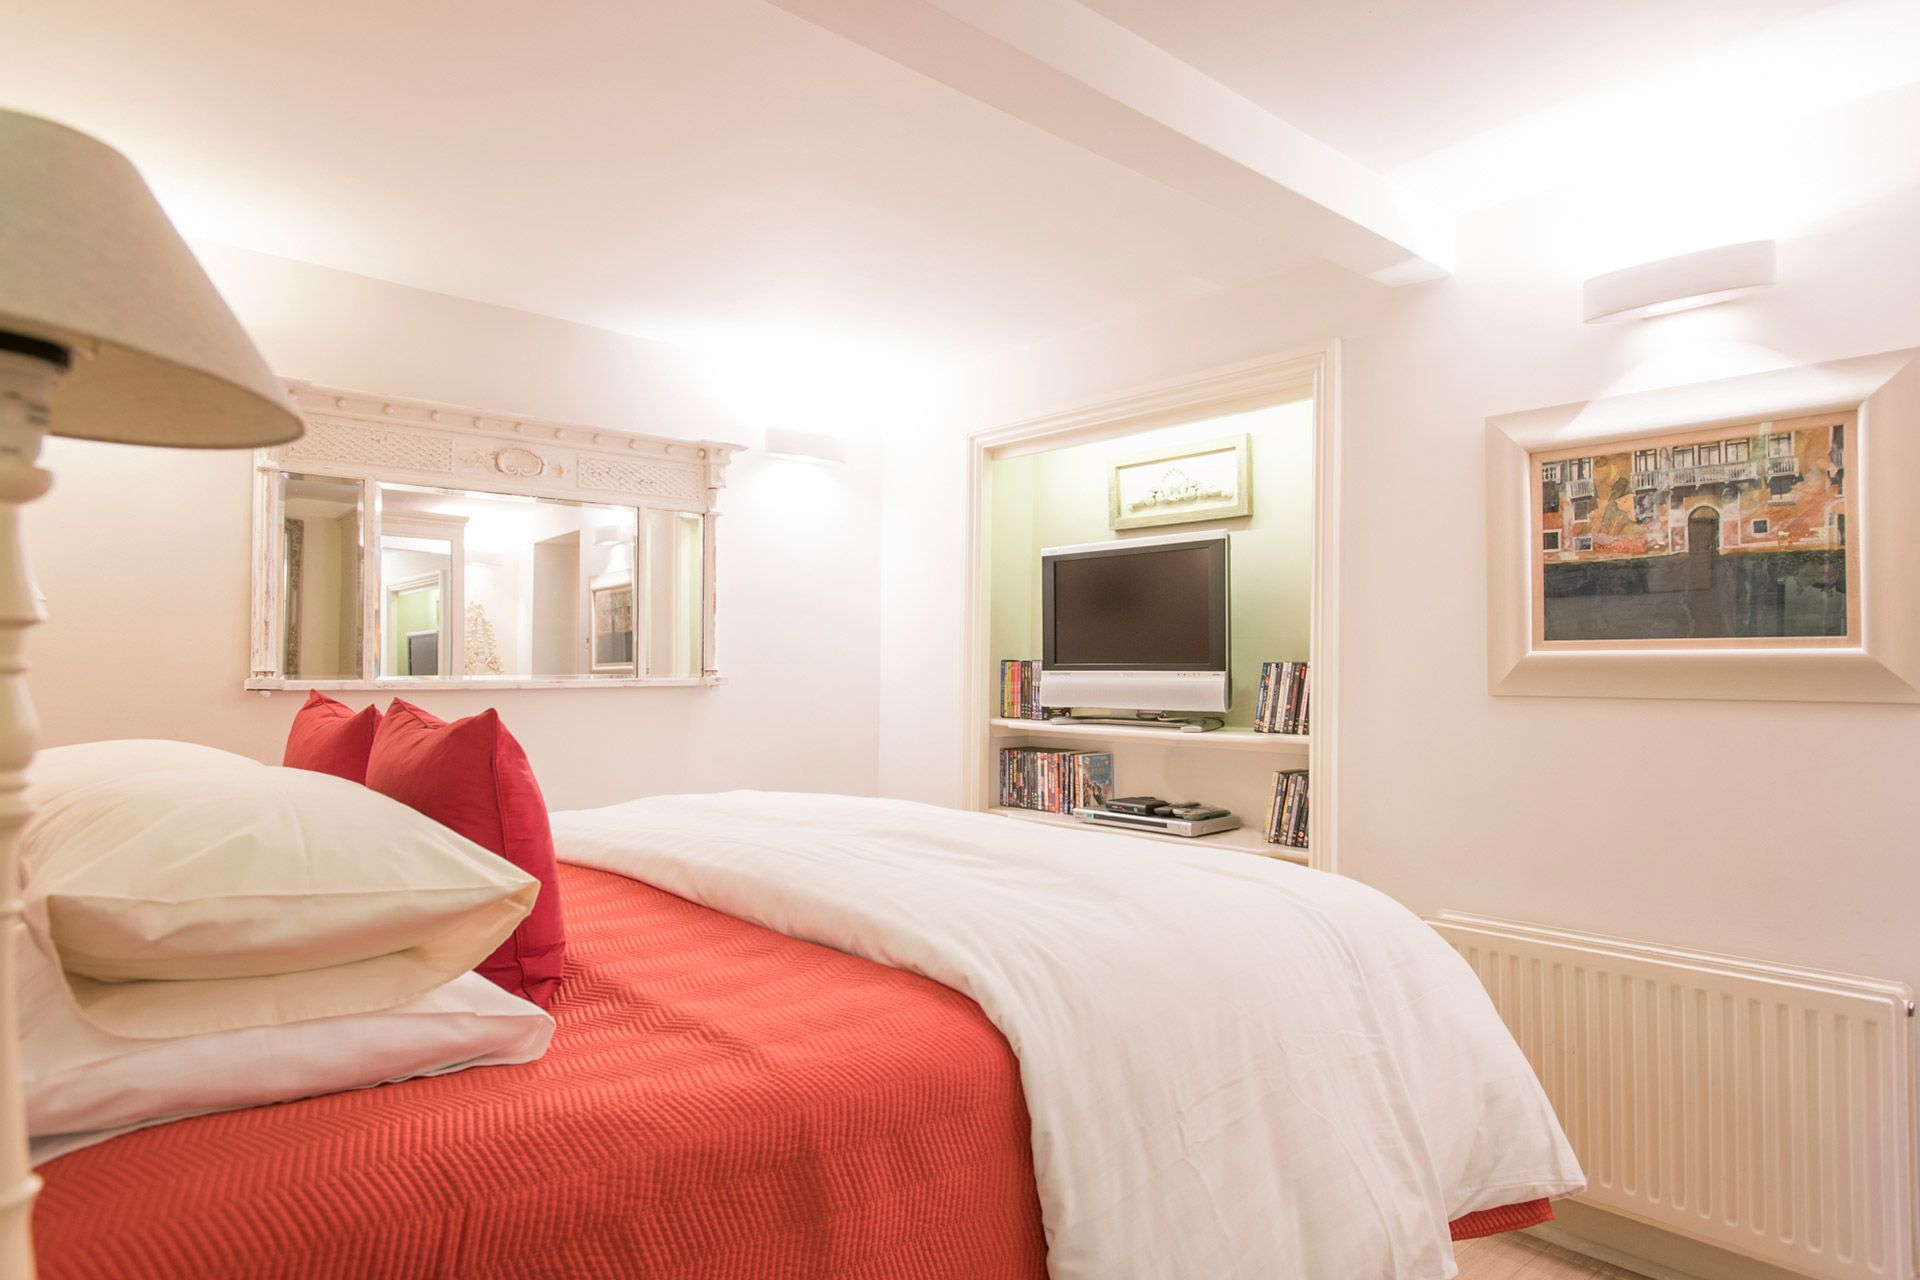 Flat screen TV in the master bedroom of the Cornwall vacation rental offered by London Perfect